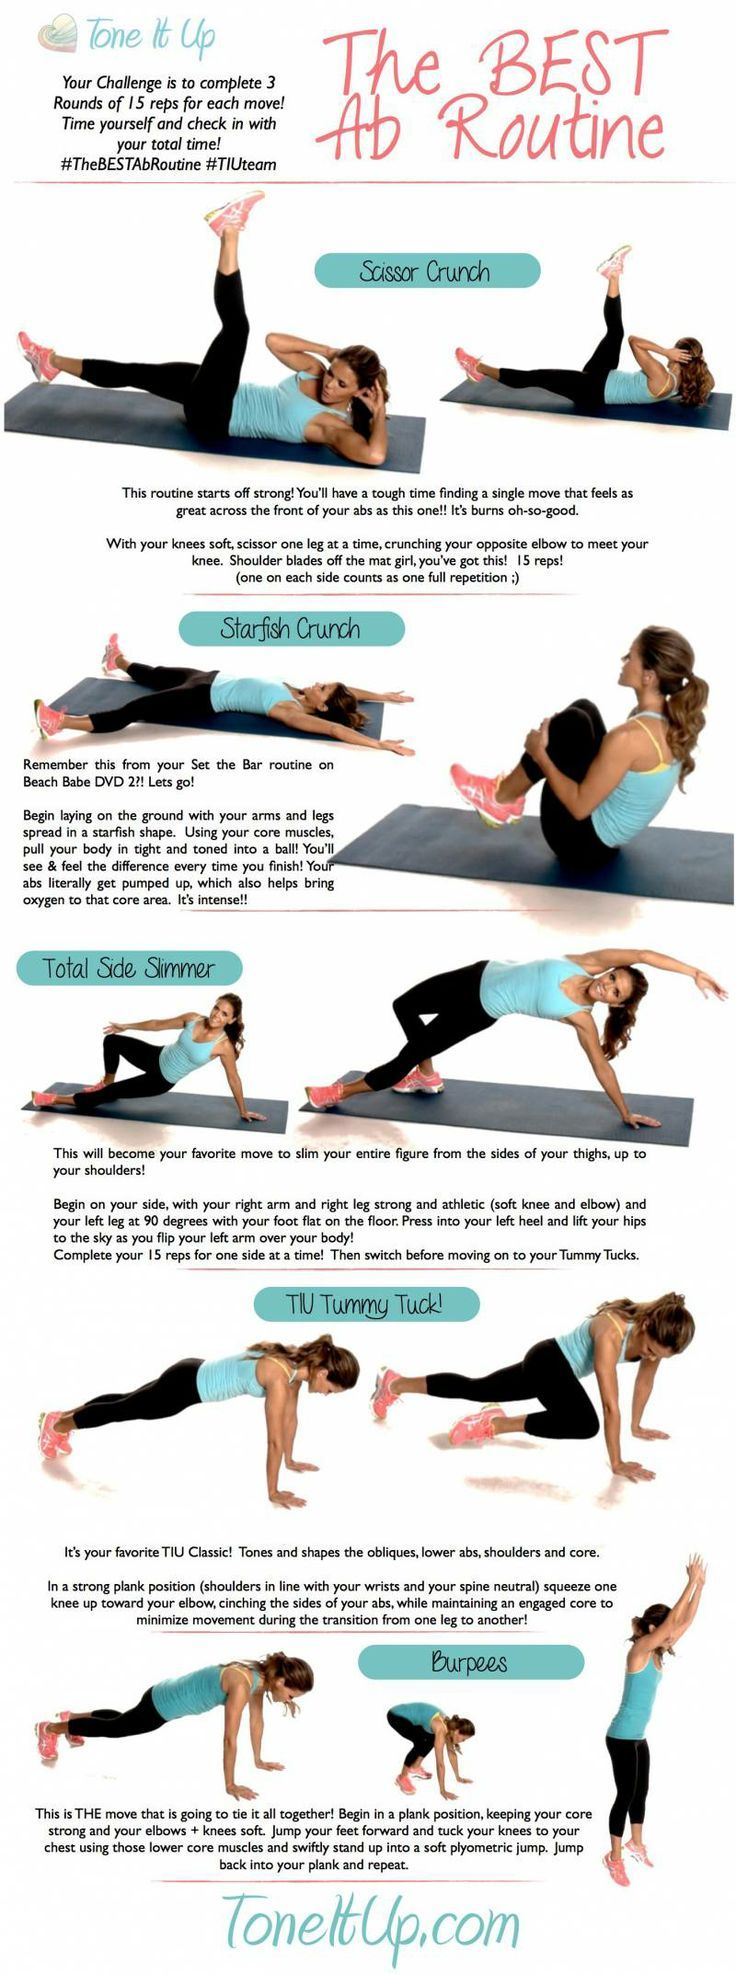 Tone It Up: The Best Ab Workout Routine | Bauchmuskeln, Traumfigur ...